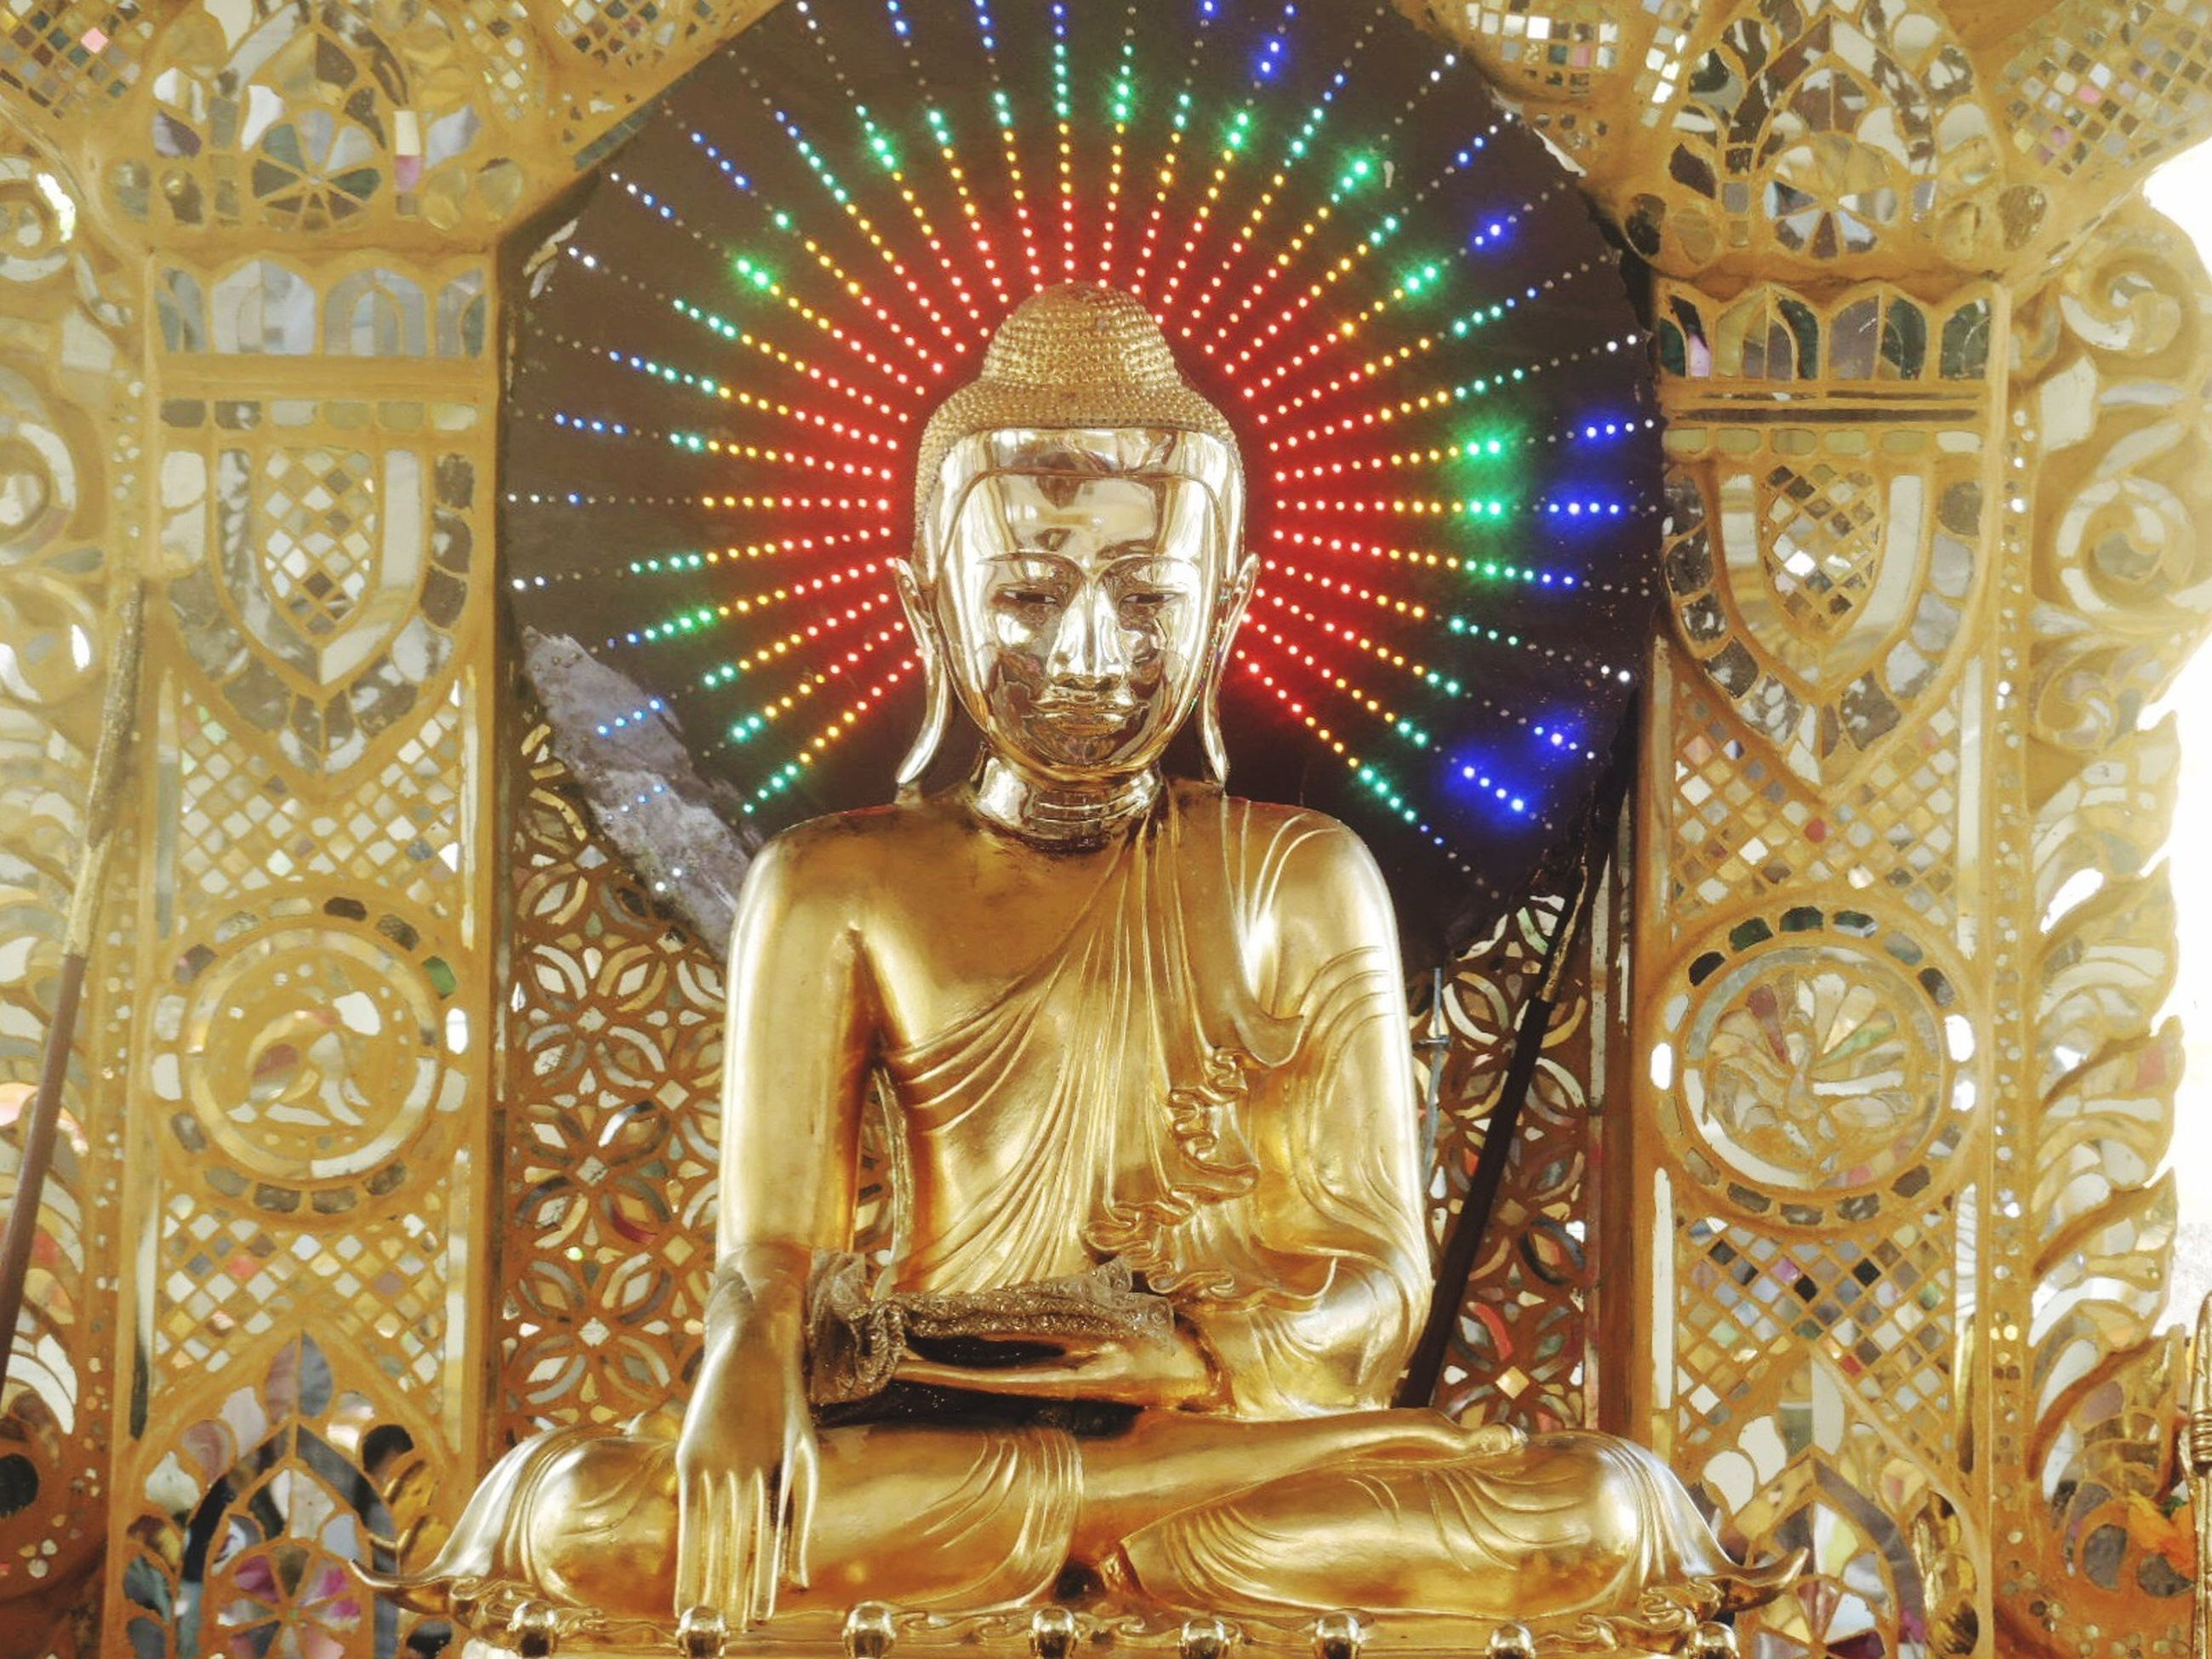 human representation, statue, spirituality, sculpture, religion, art and craft, indoors, low angle view, buddha, art, place of worship, gold colored, creativity, idol, gold, golden color, lens flare, history